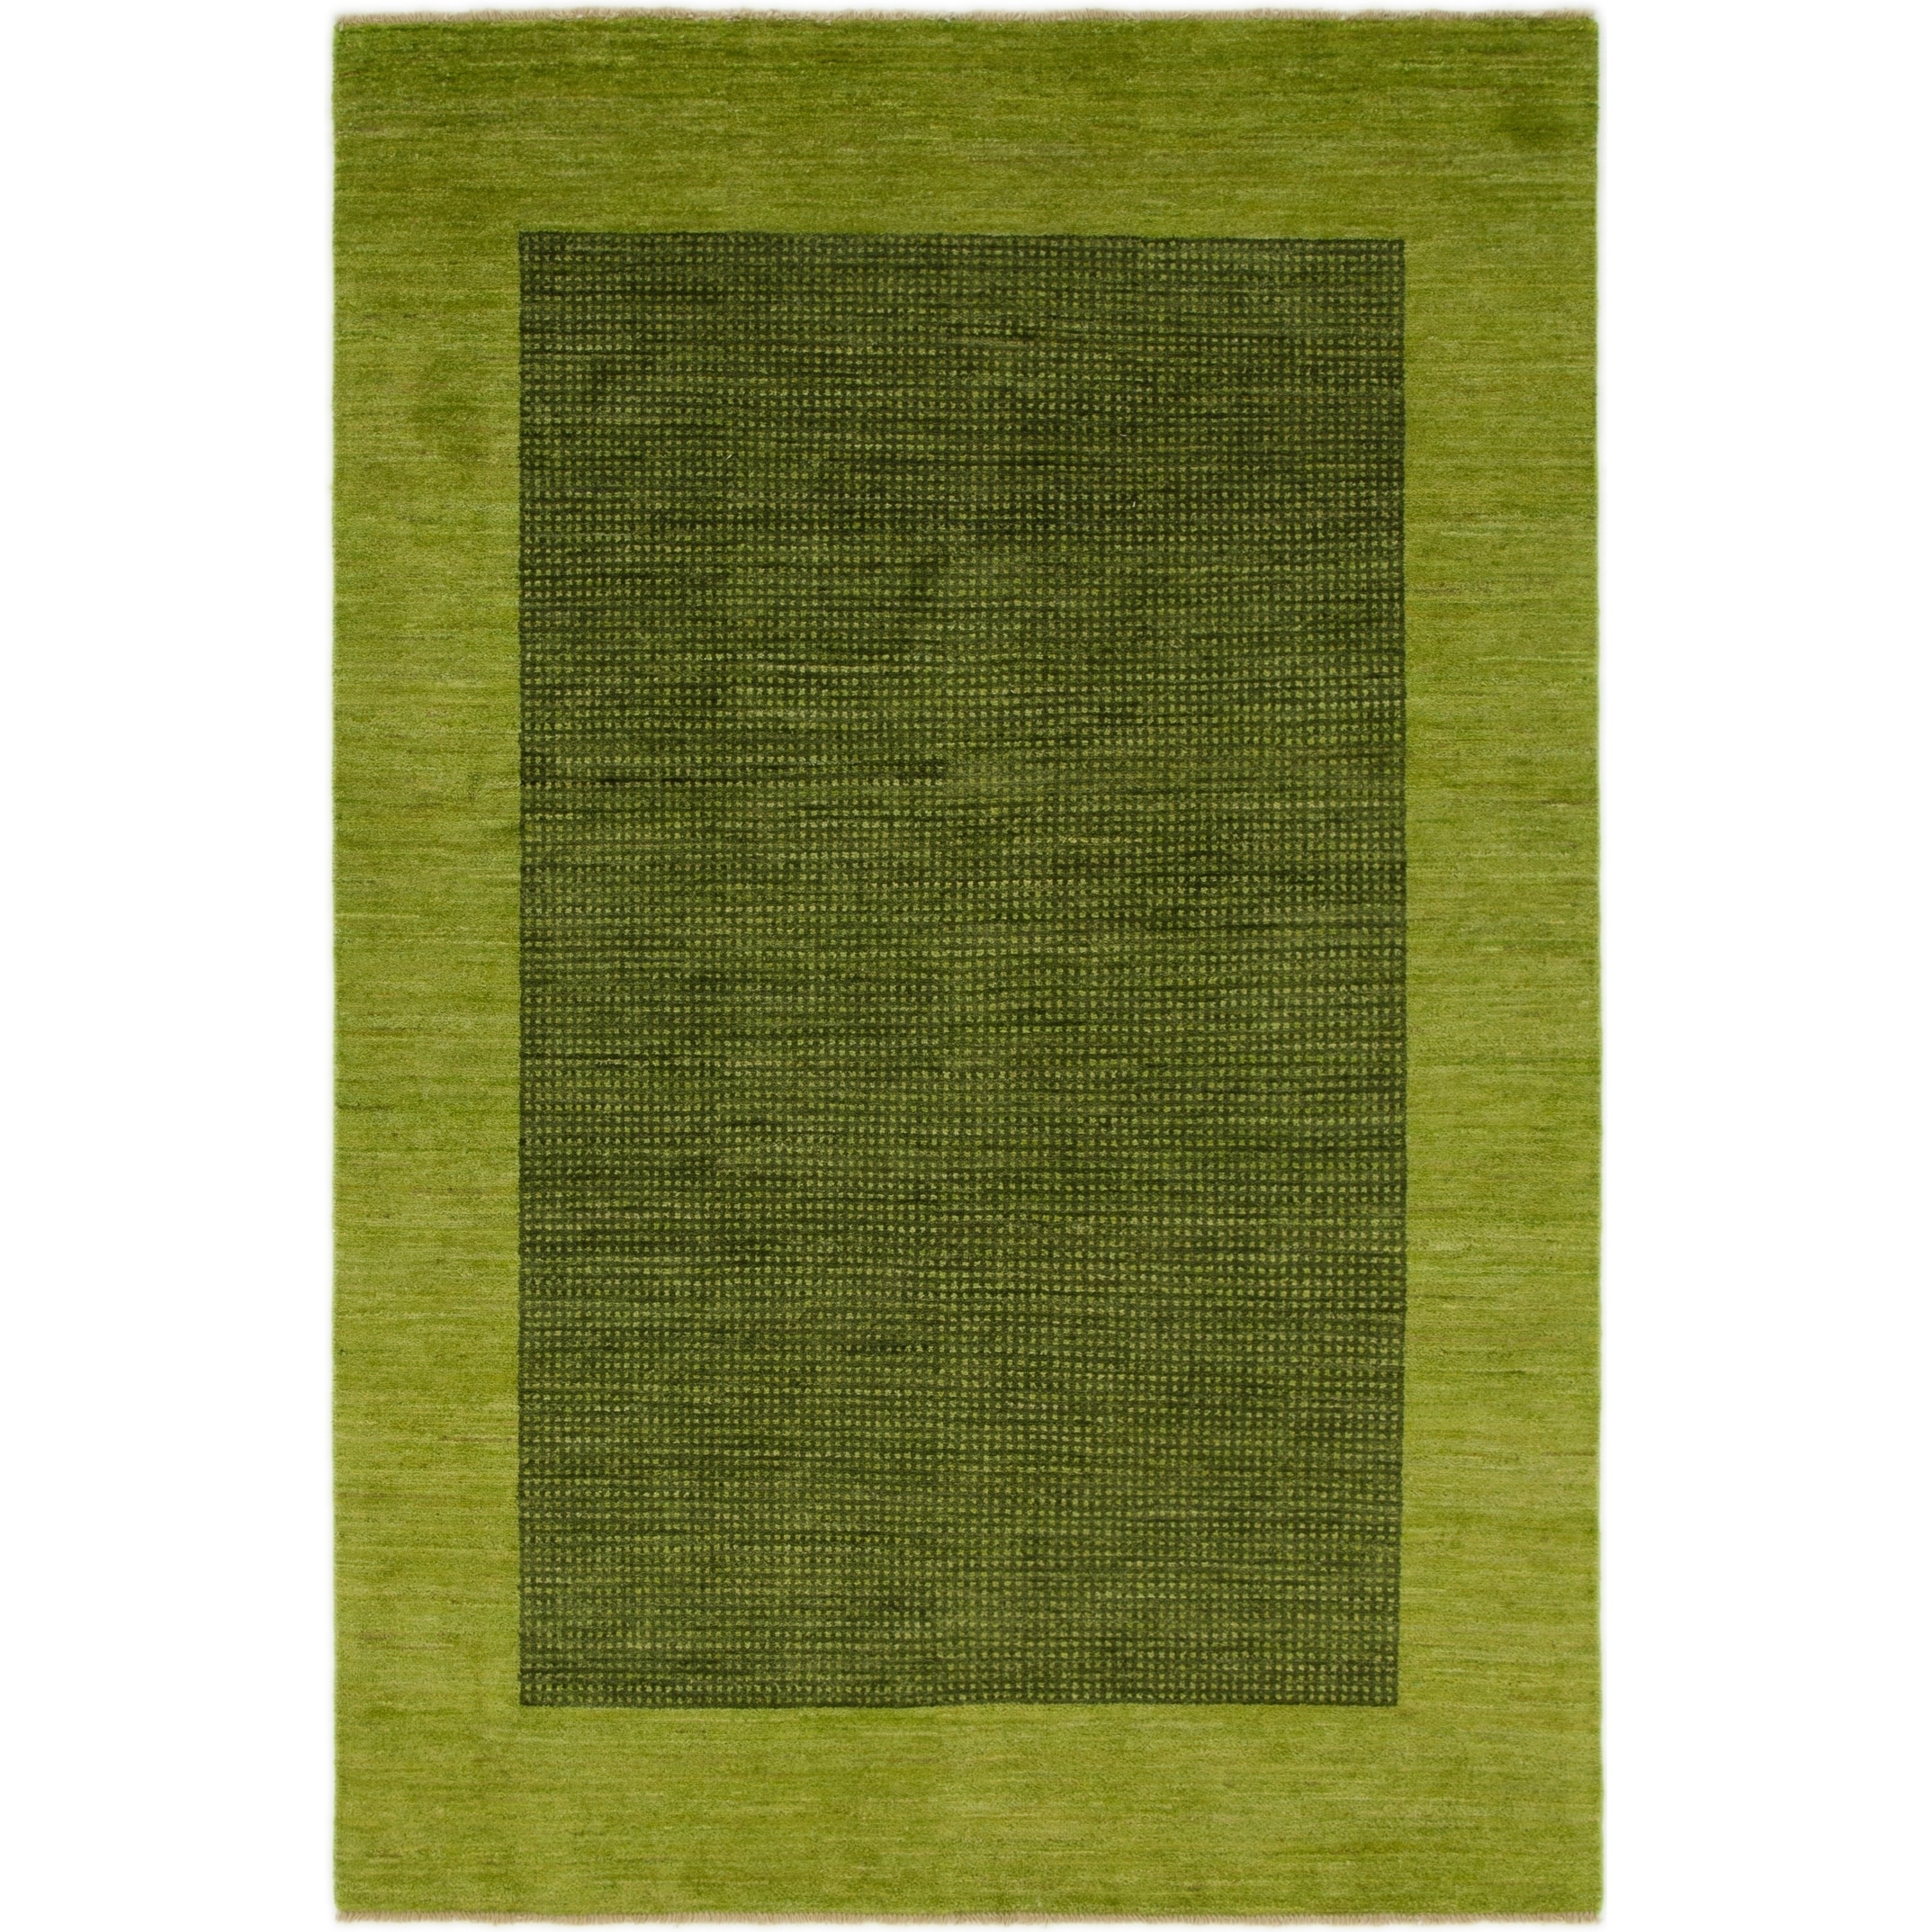 Hand Knotted Kashkuli Gabbeh Wool Area Rug - 5 5 x 8 2 (Green - 5 5 x 8 2)